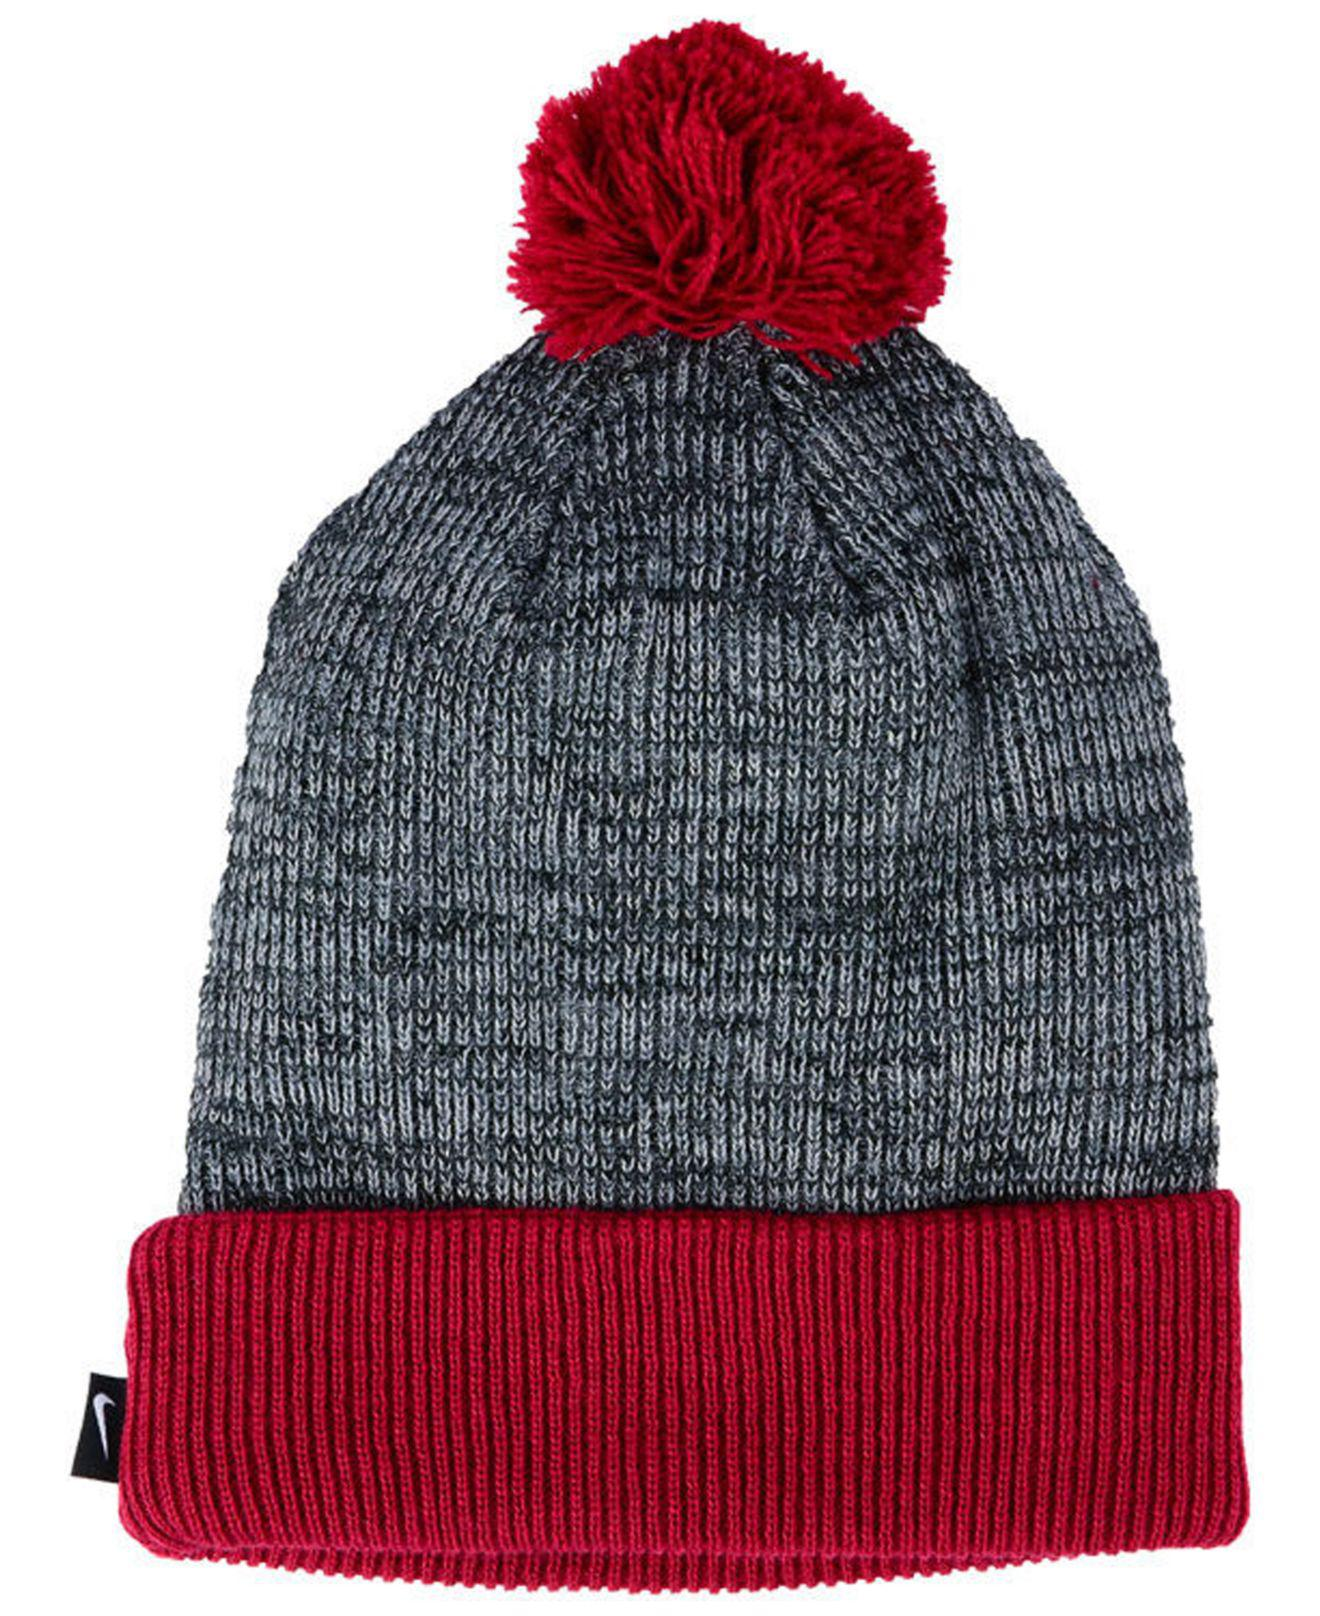 70fe25d0378 Lyst - Nike Heather Pom Knit Hat